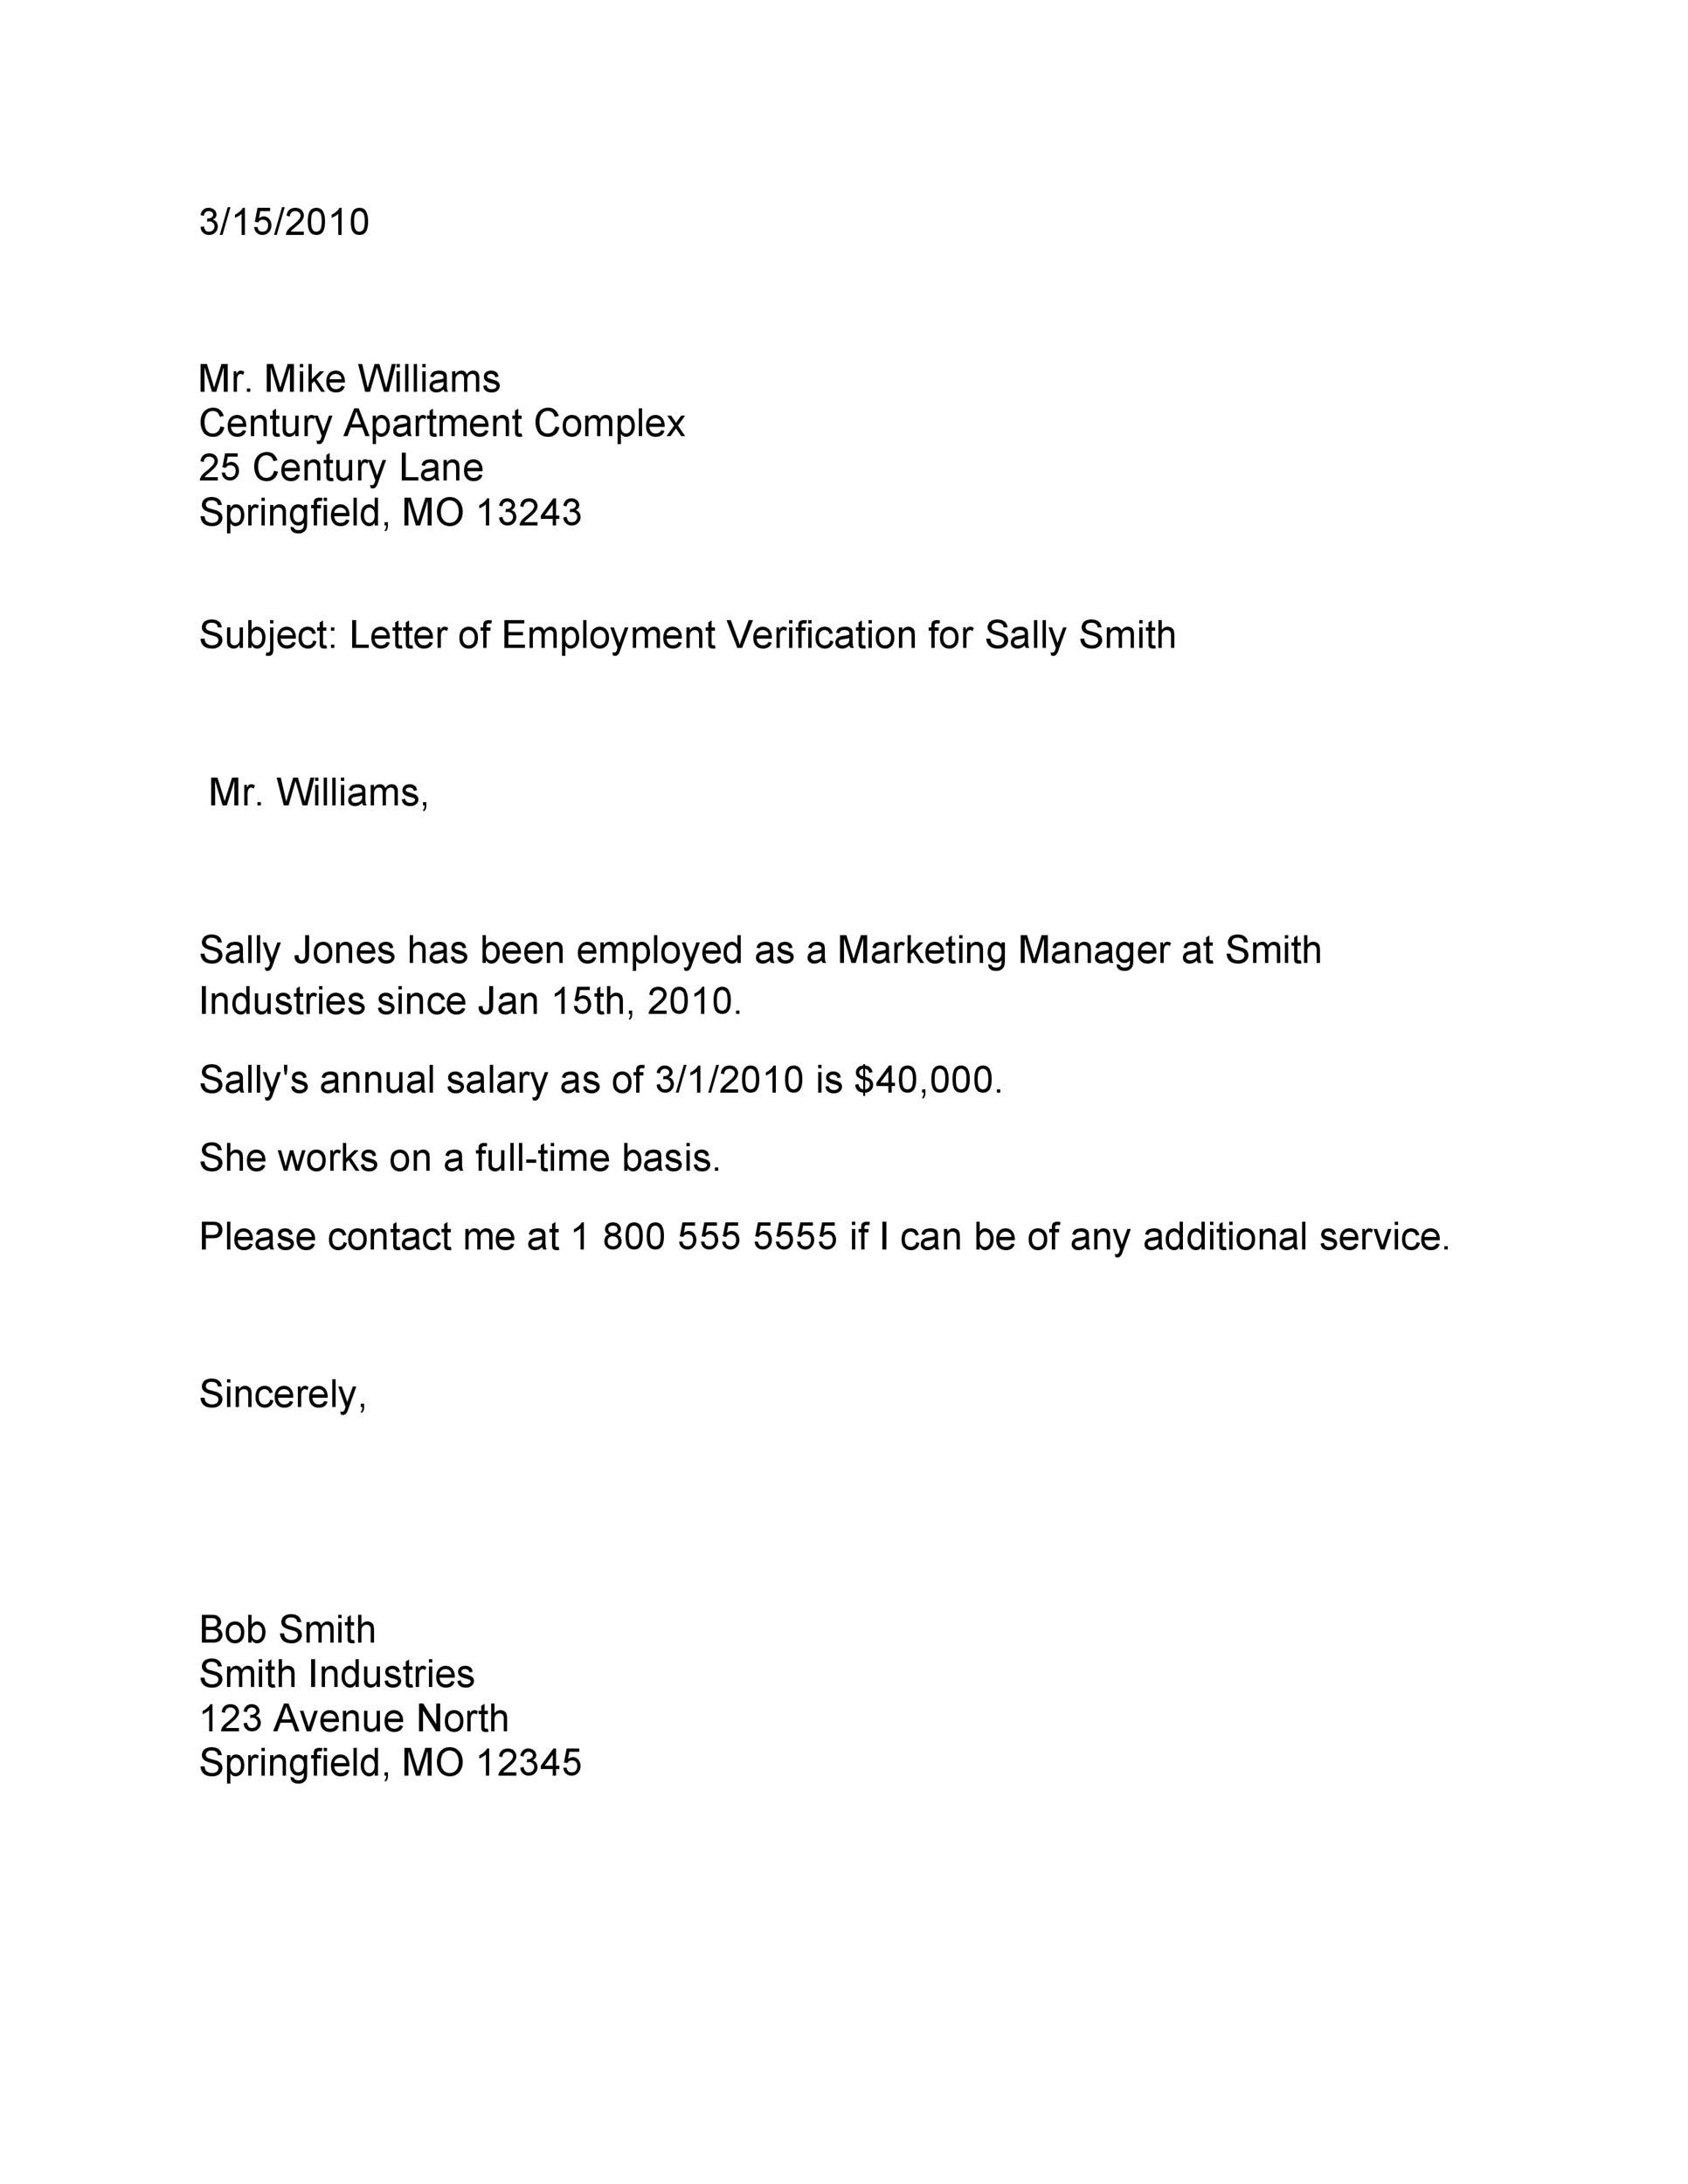 003 Unforgettable Employment Verification Letter Template Word Photo  South AfricaFull